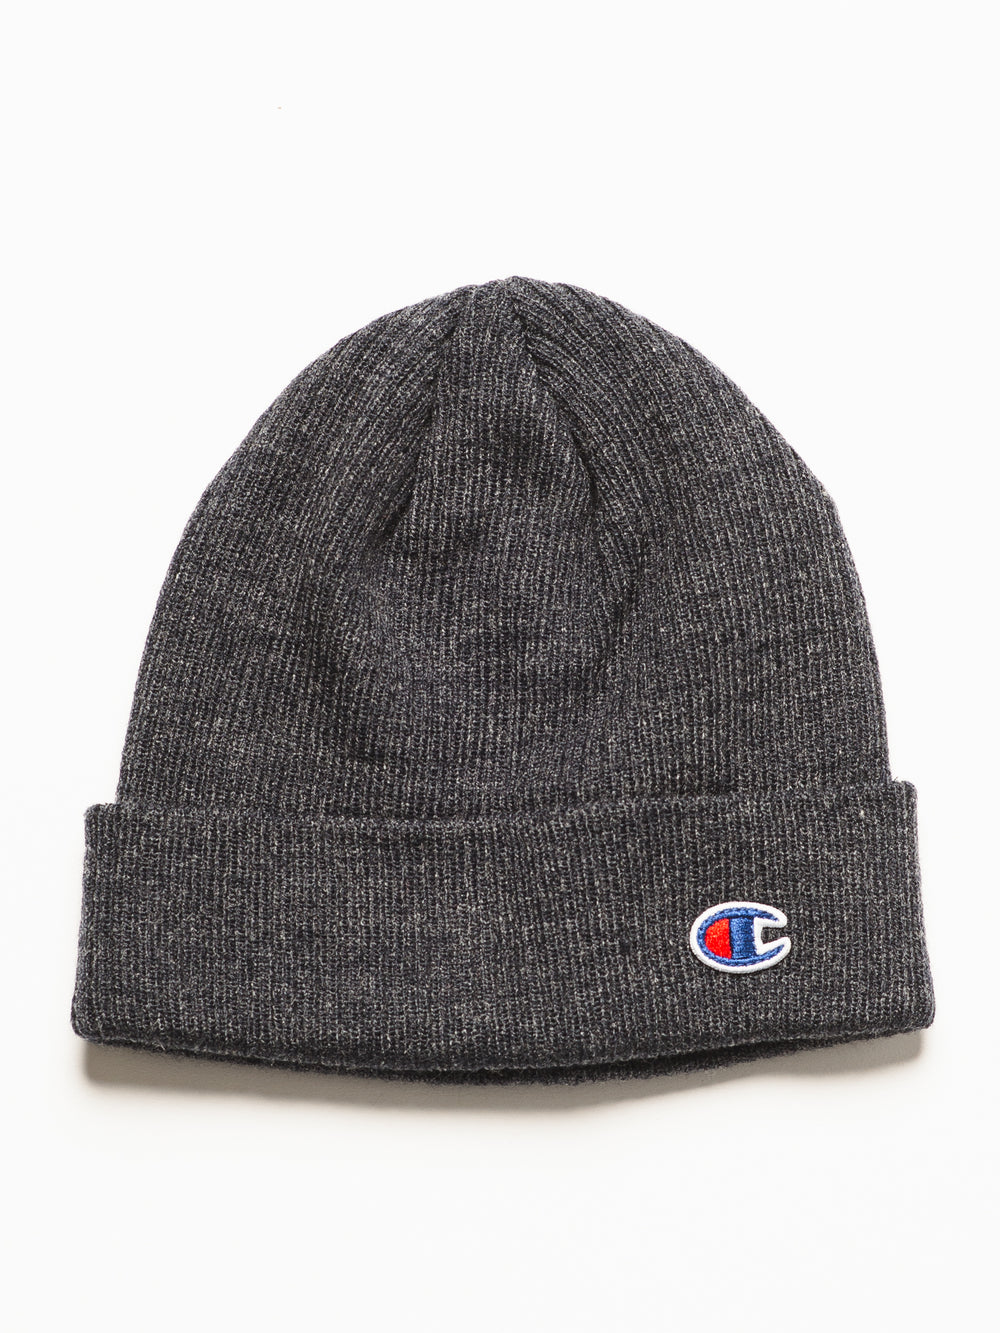 TRANSITION CUFF BEANIE - DARK